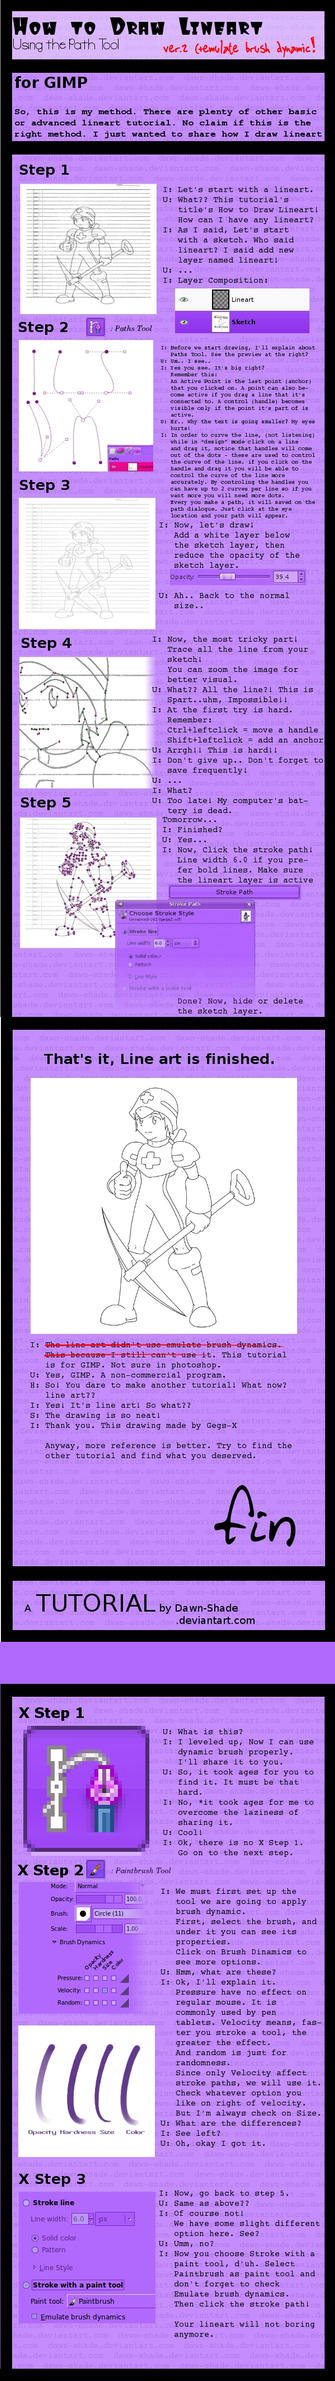 Line Drawing Gimp : Line art tutorial v using gimp by dawn shade on deviantart